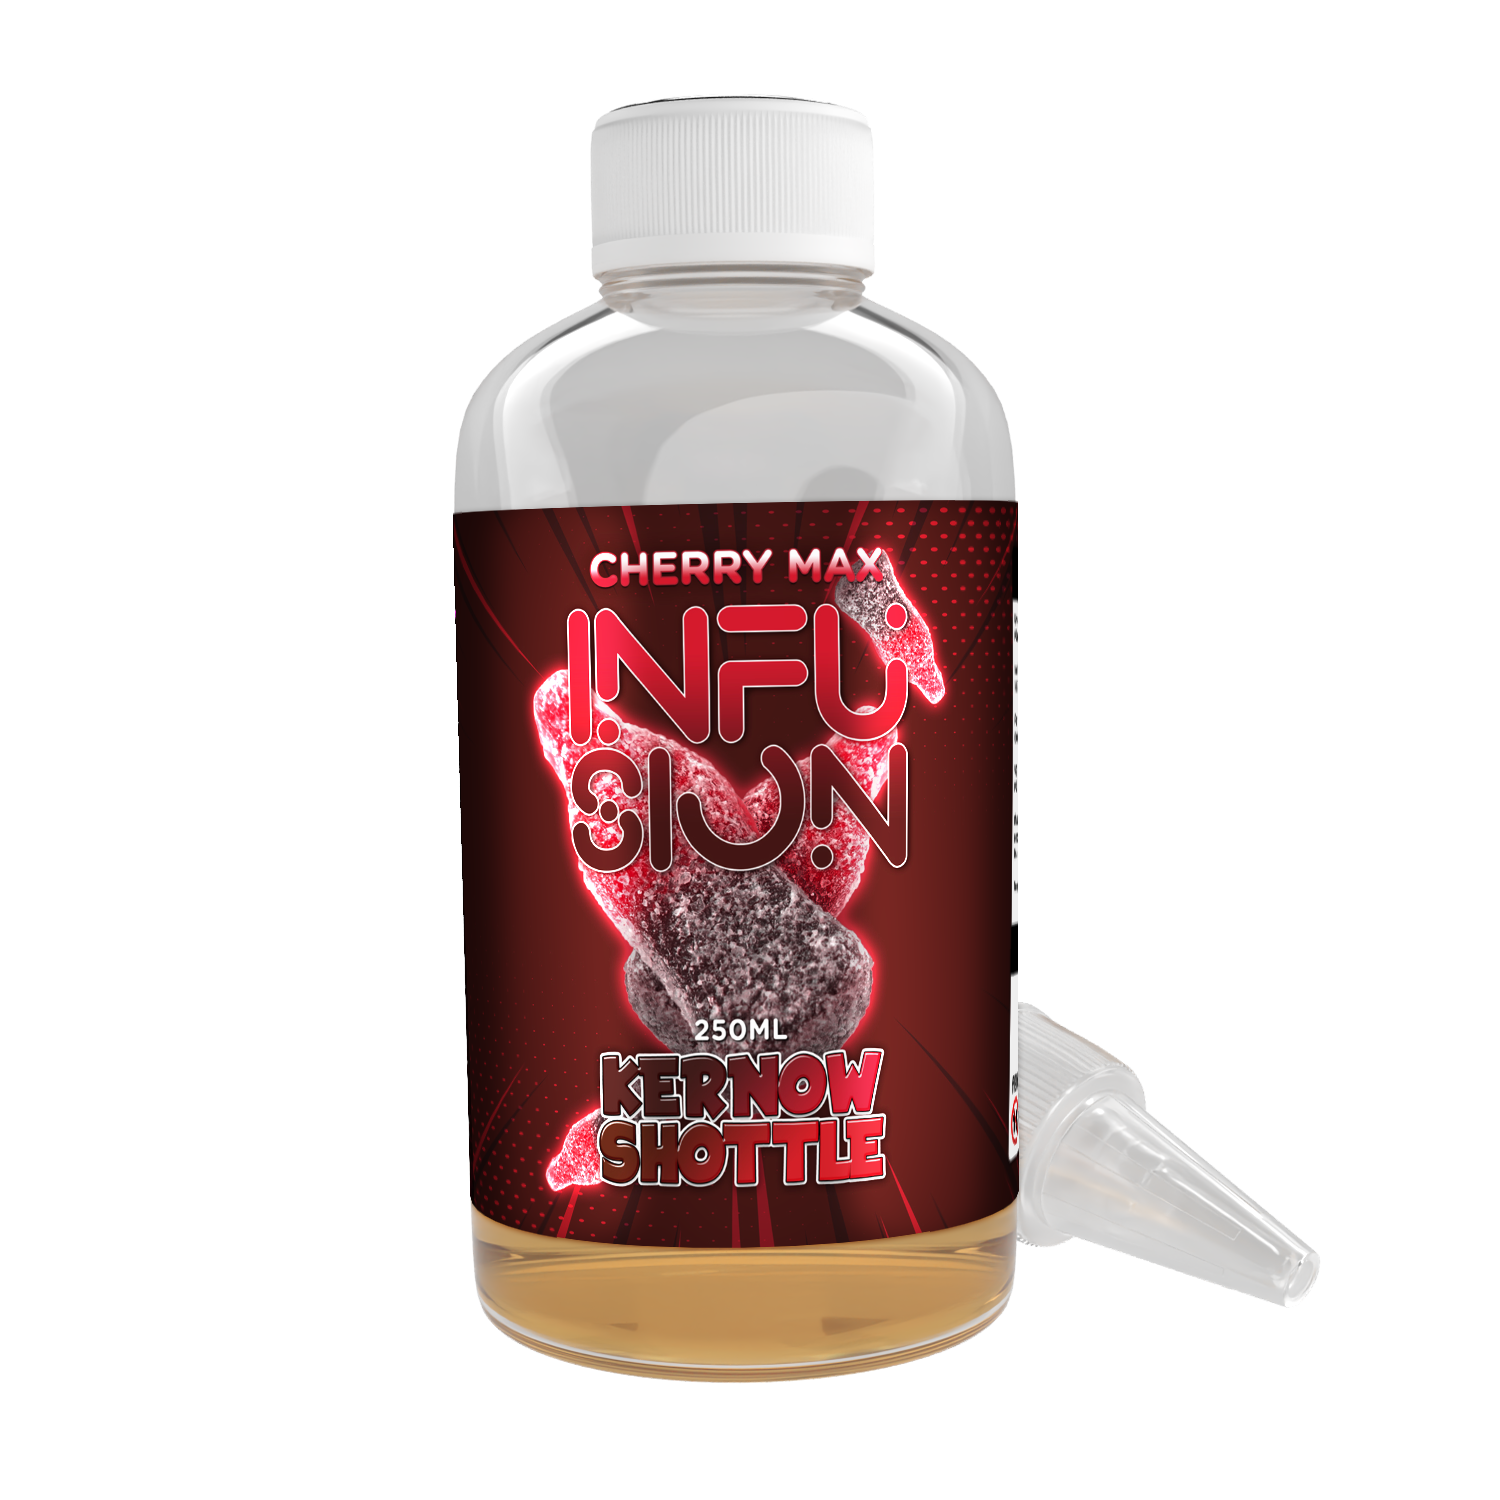 Cherry-Max Infusion Shottle Flavour Shot by Kernow - 250ml